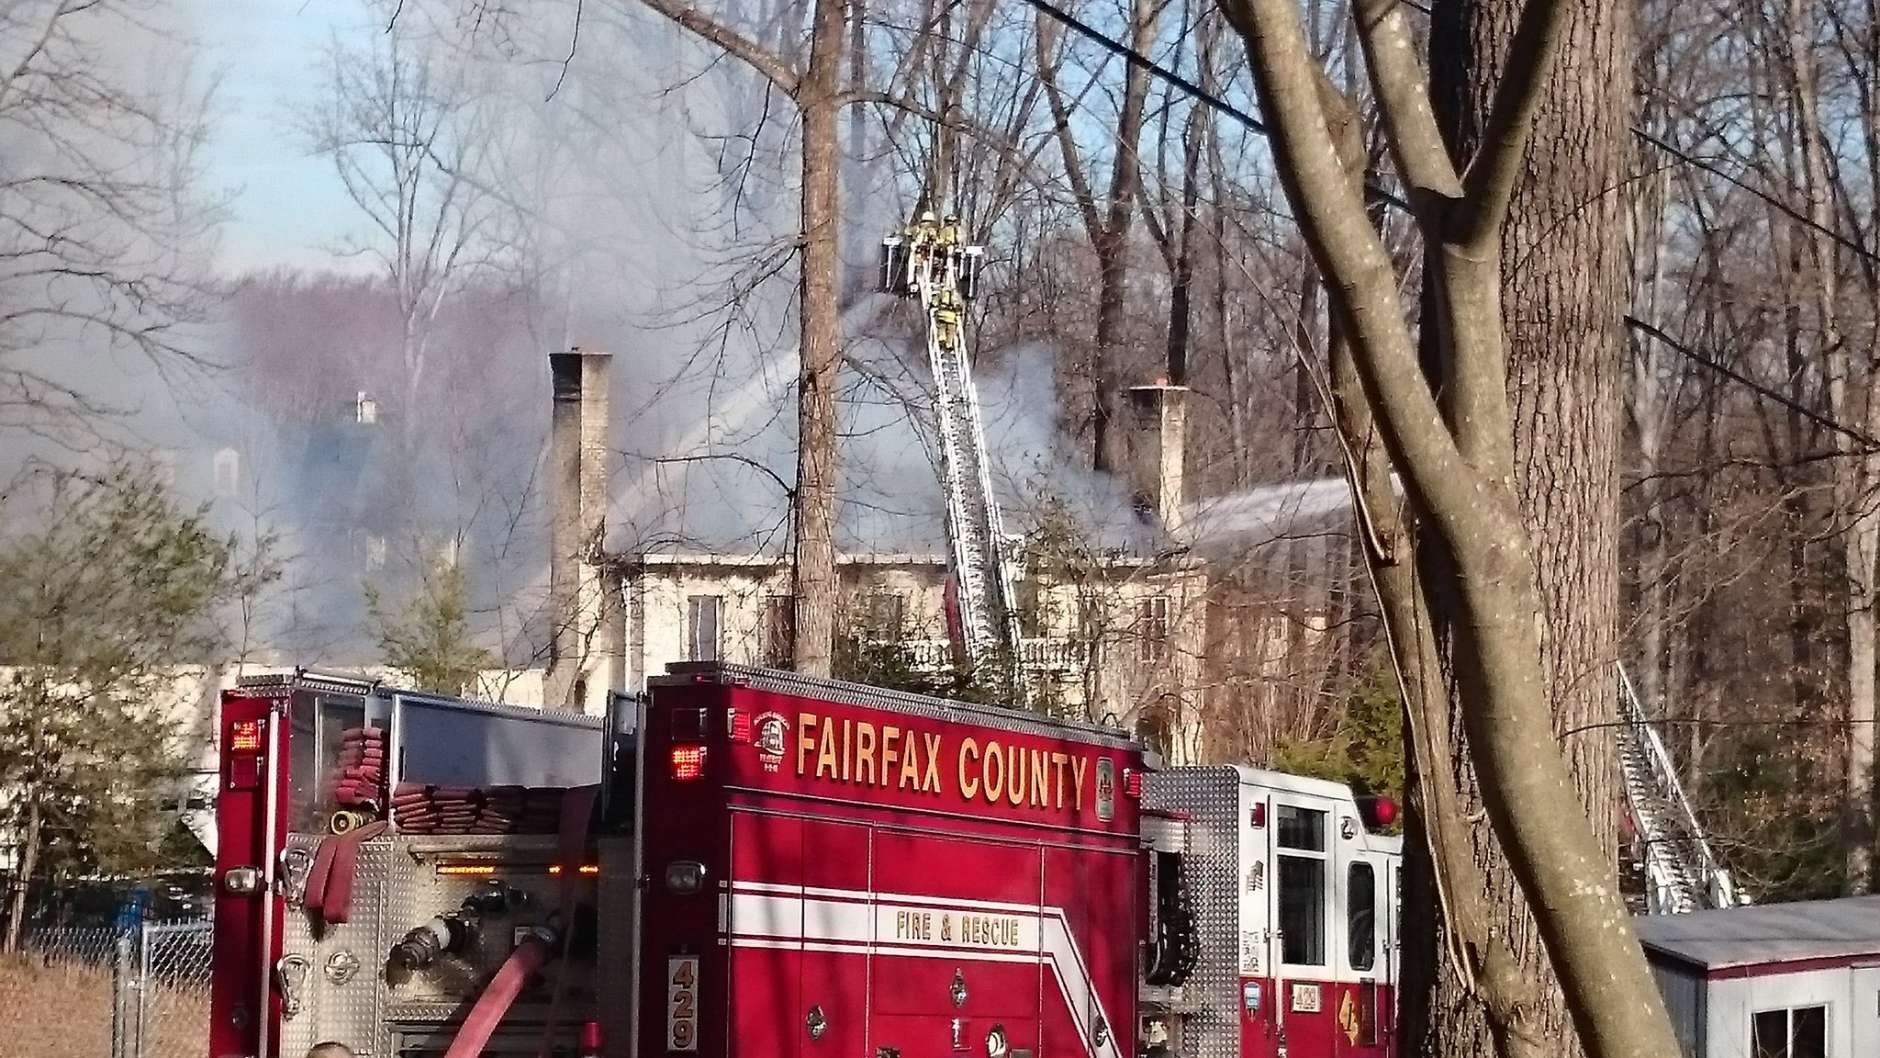 Not much left of the McLean, Virginia home consumed by fire, WTOP's Dennis Foley reports. (WTOP/Dennis Foley)